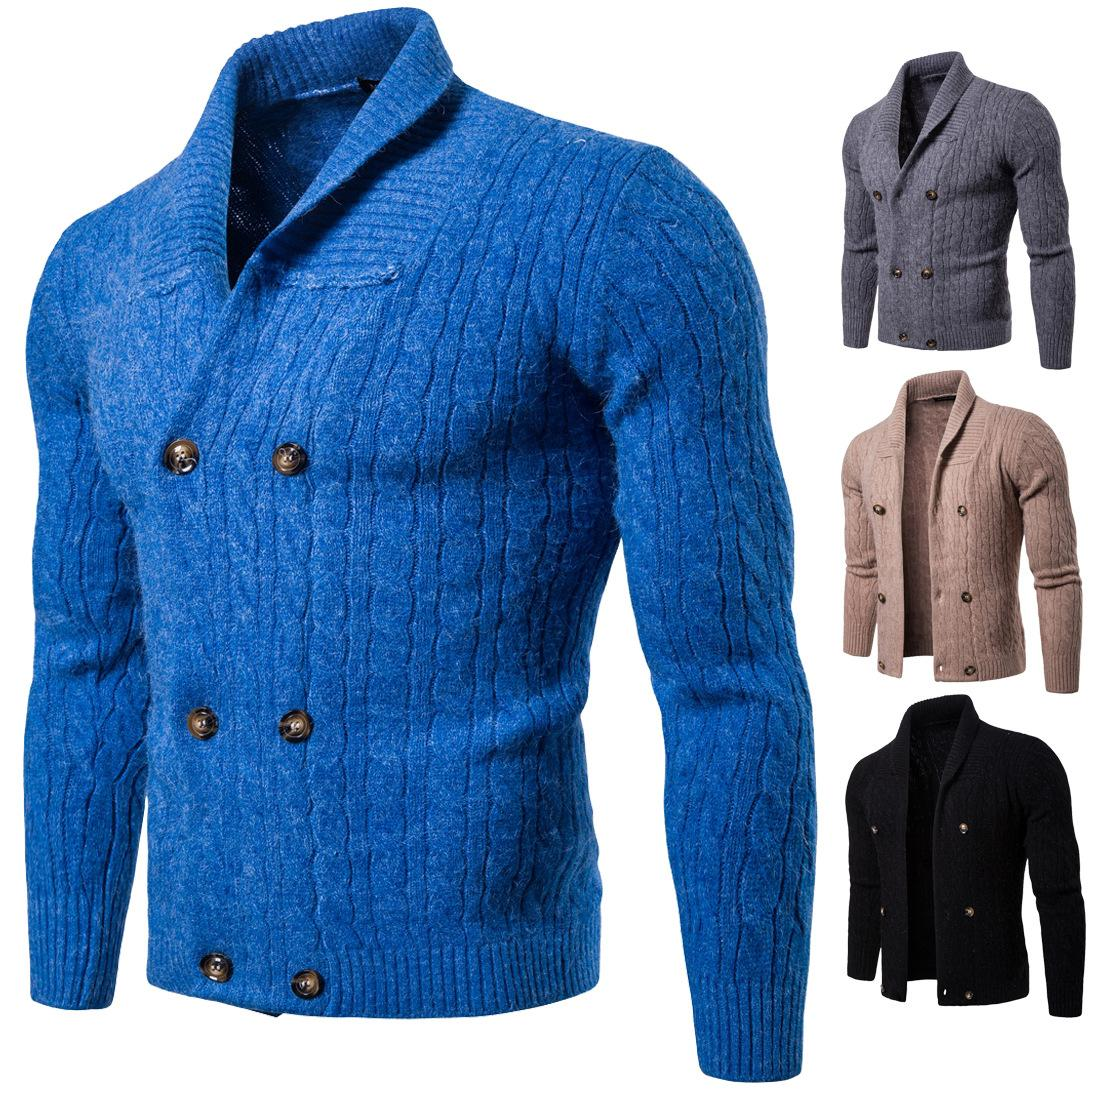 76a4afe9c61aa9 2019 The New Autumn Young Man Pure Color Adds Thick Knit Cardigan Sweater  Jacket Fashionable Paragraph Cardigan Sweater 108 From Scmyy123456